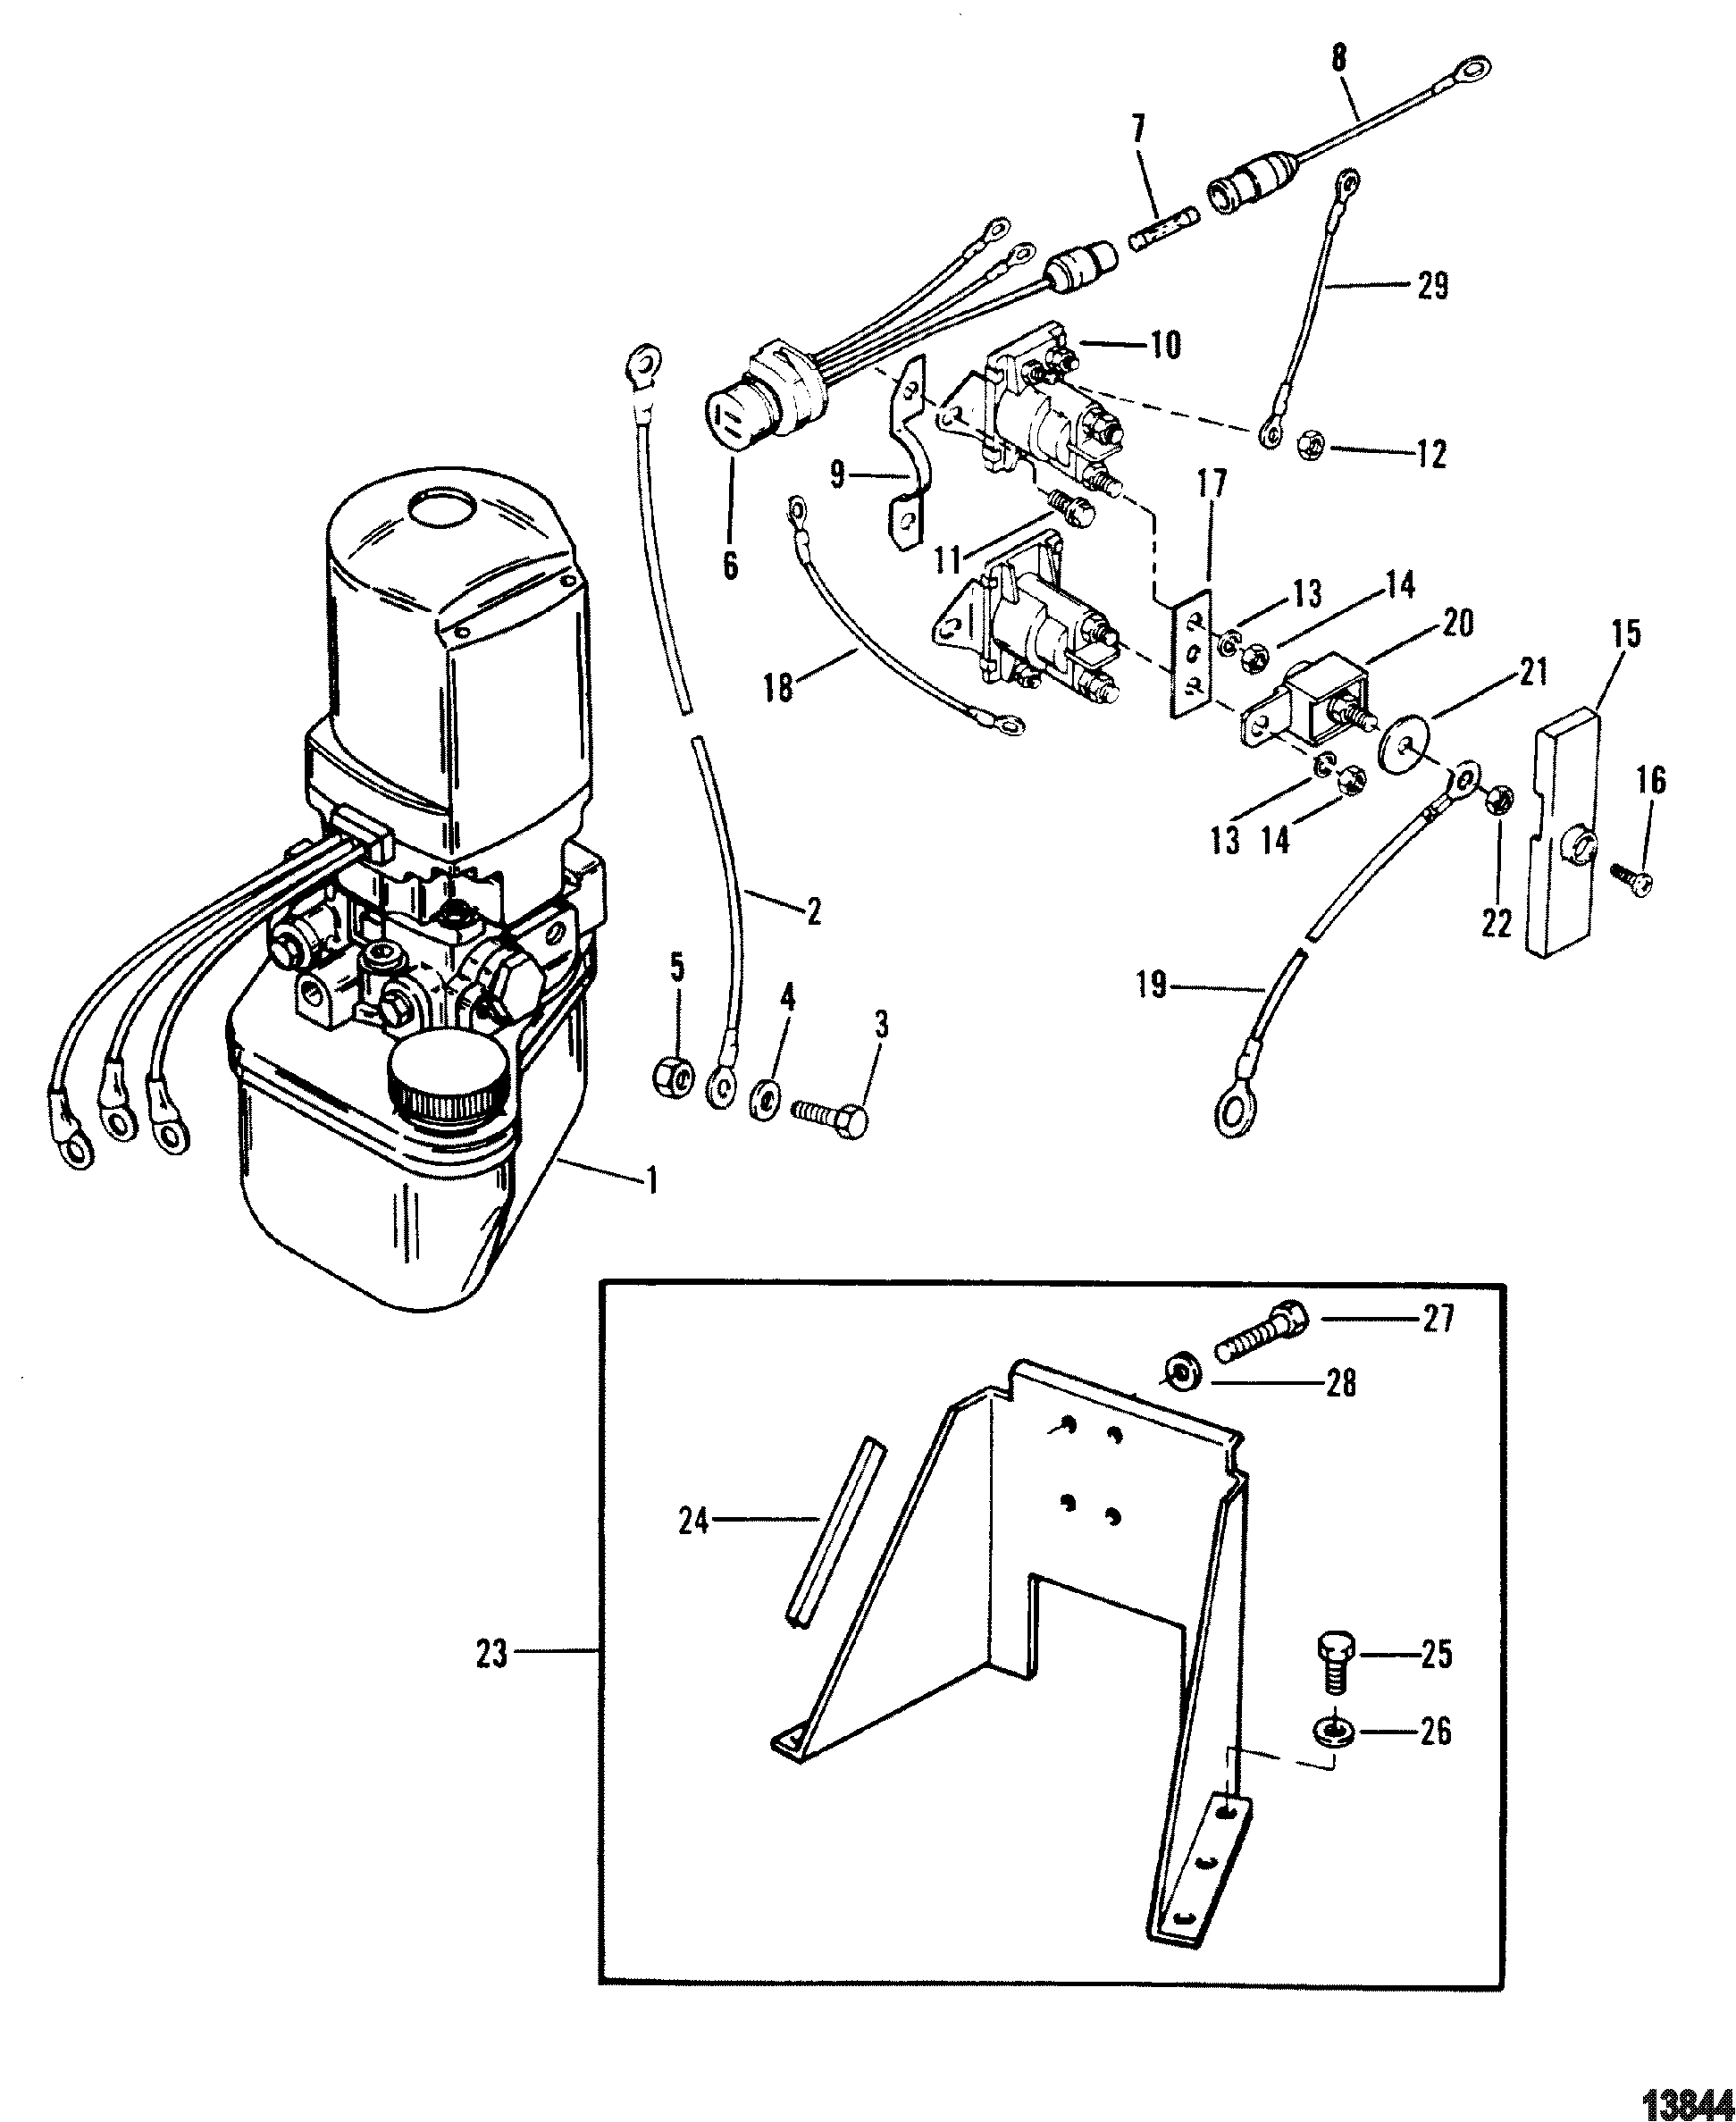 Hydraulic Pump And Bracket For Mercruiser Alpha One Gen Ii Stern Drive And Transom Assembly